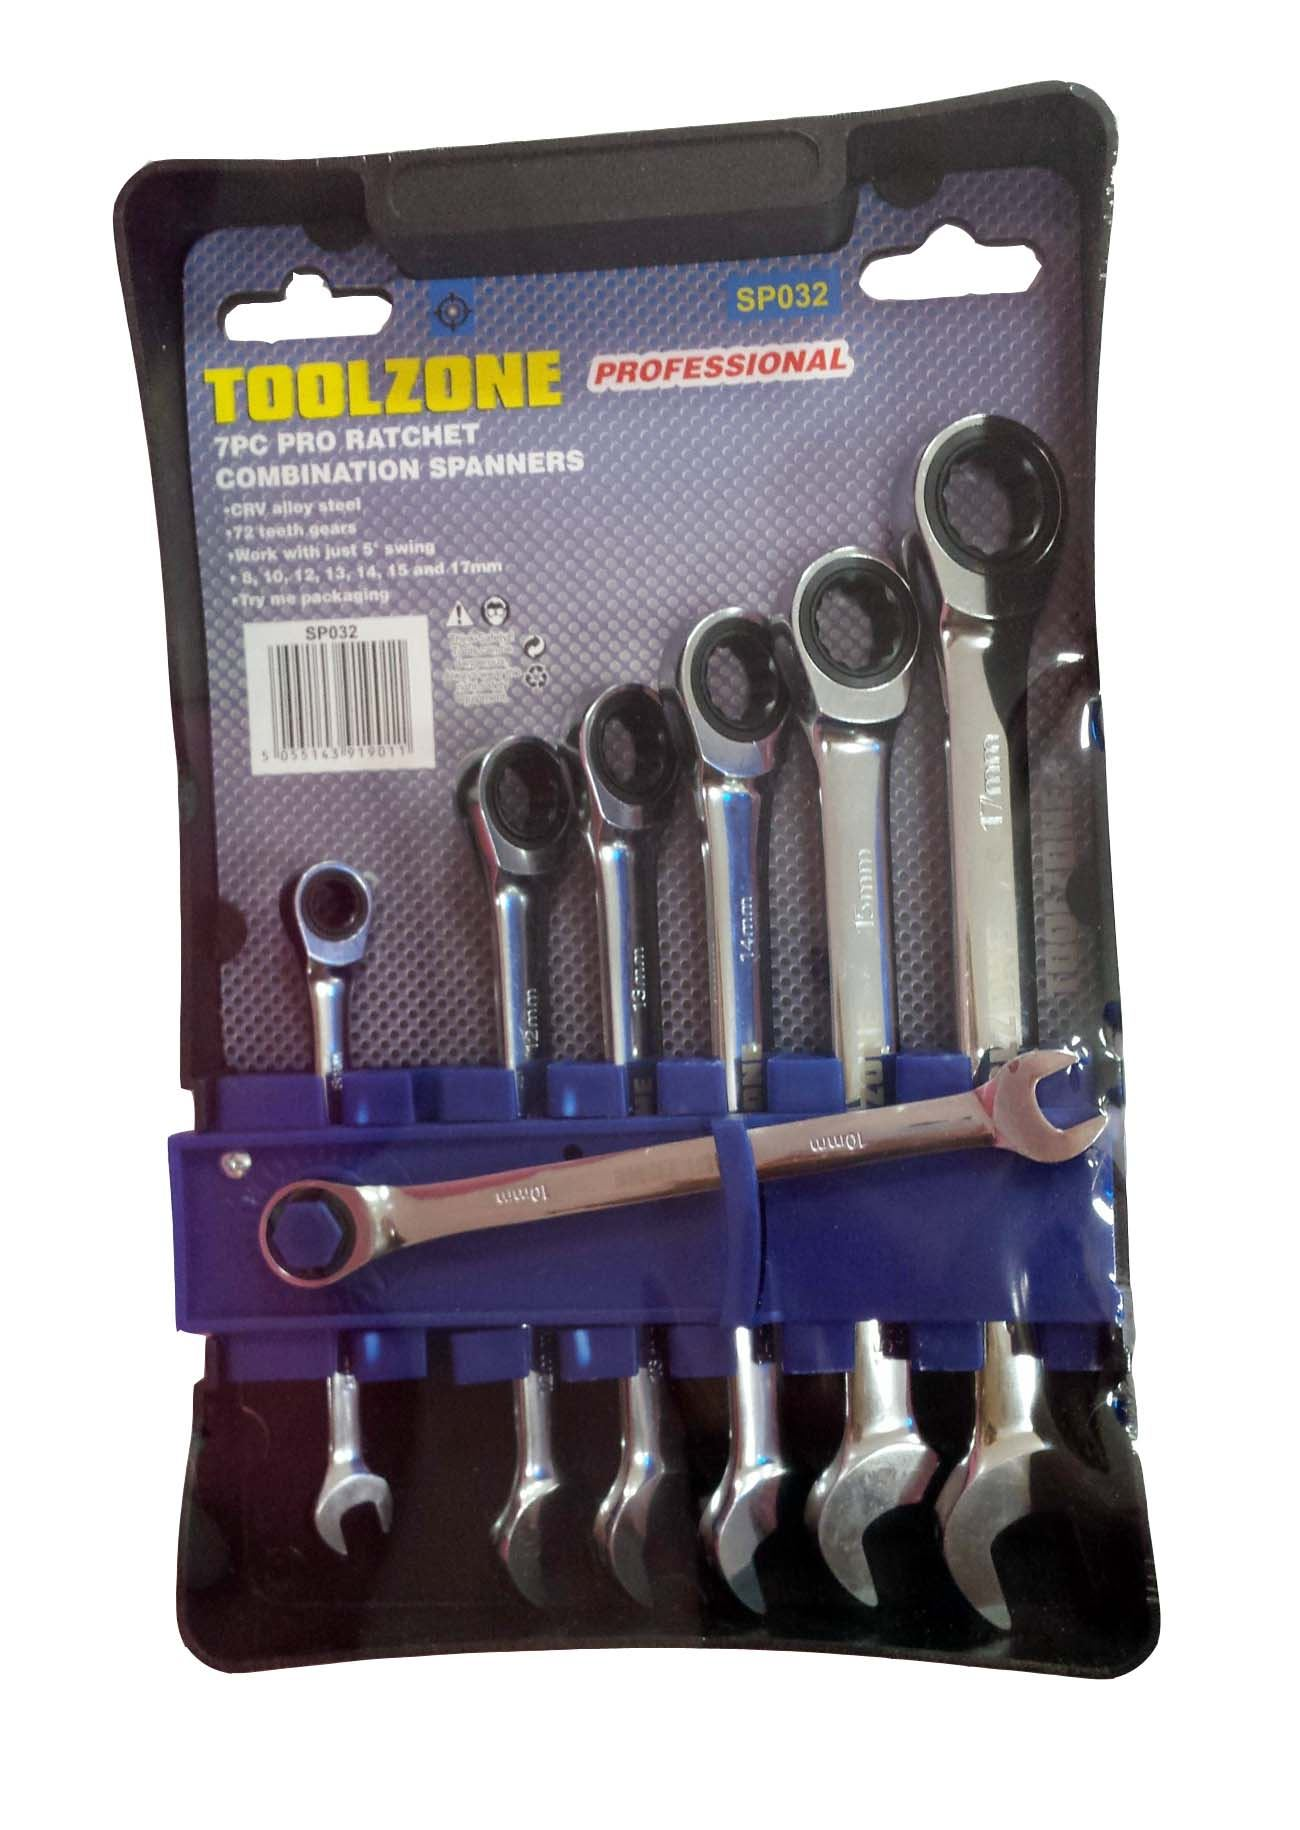 Toolzone 7Pc Prof Ratchet Combi Spanners